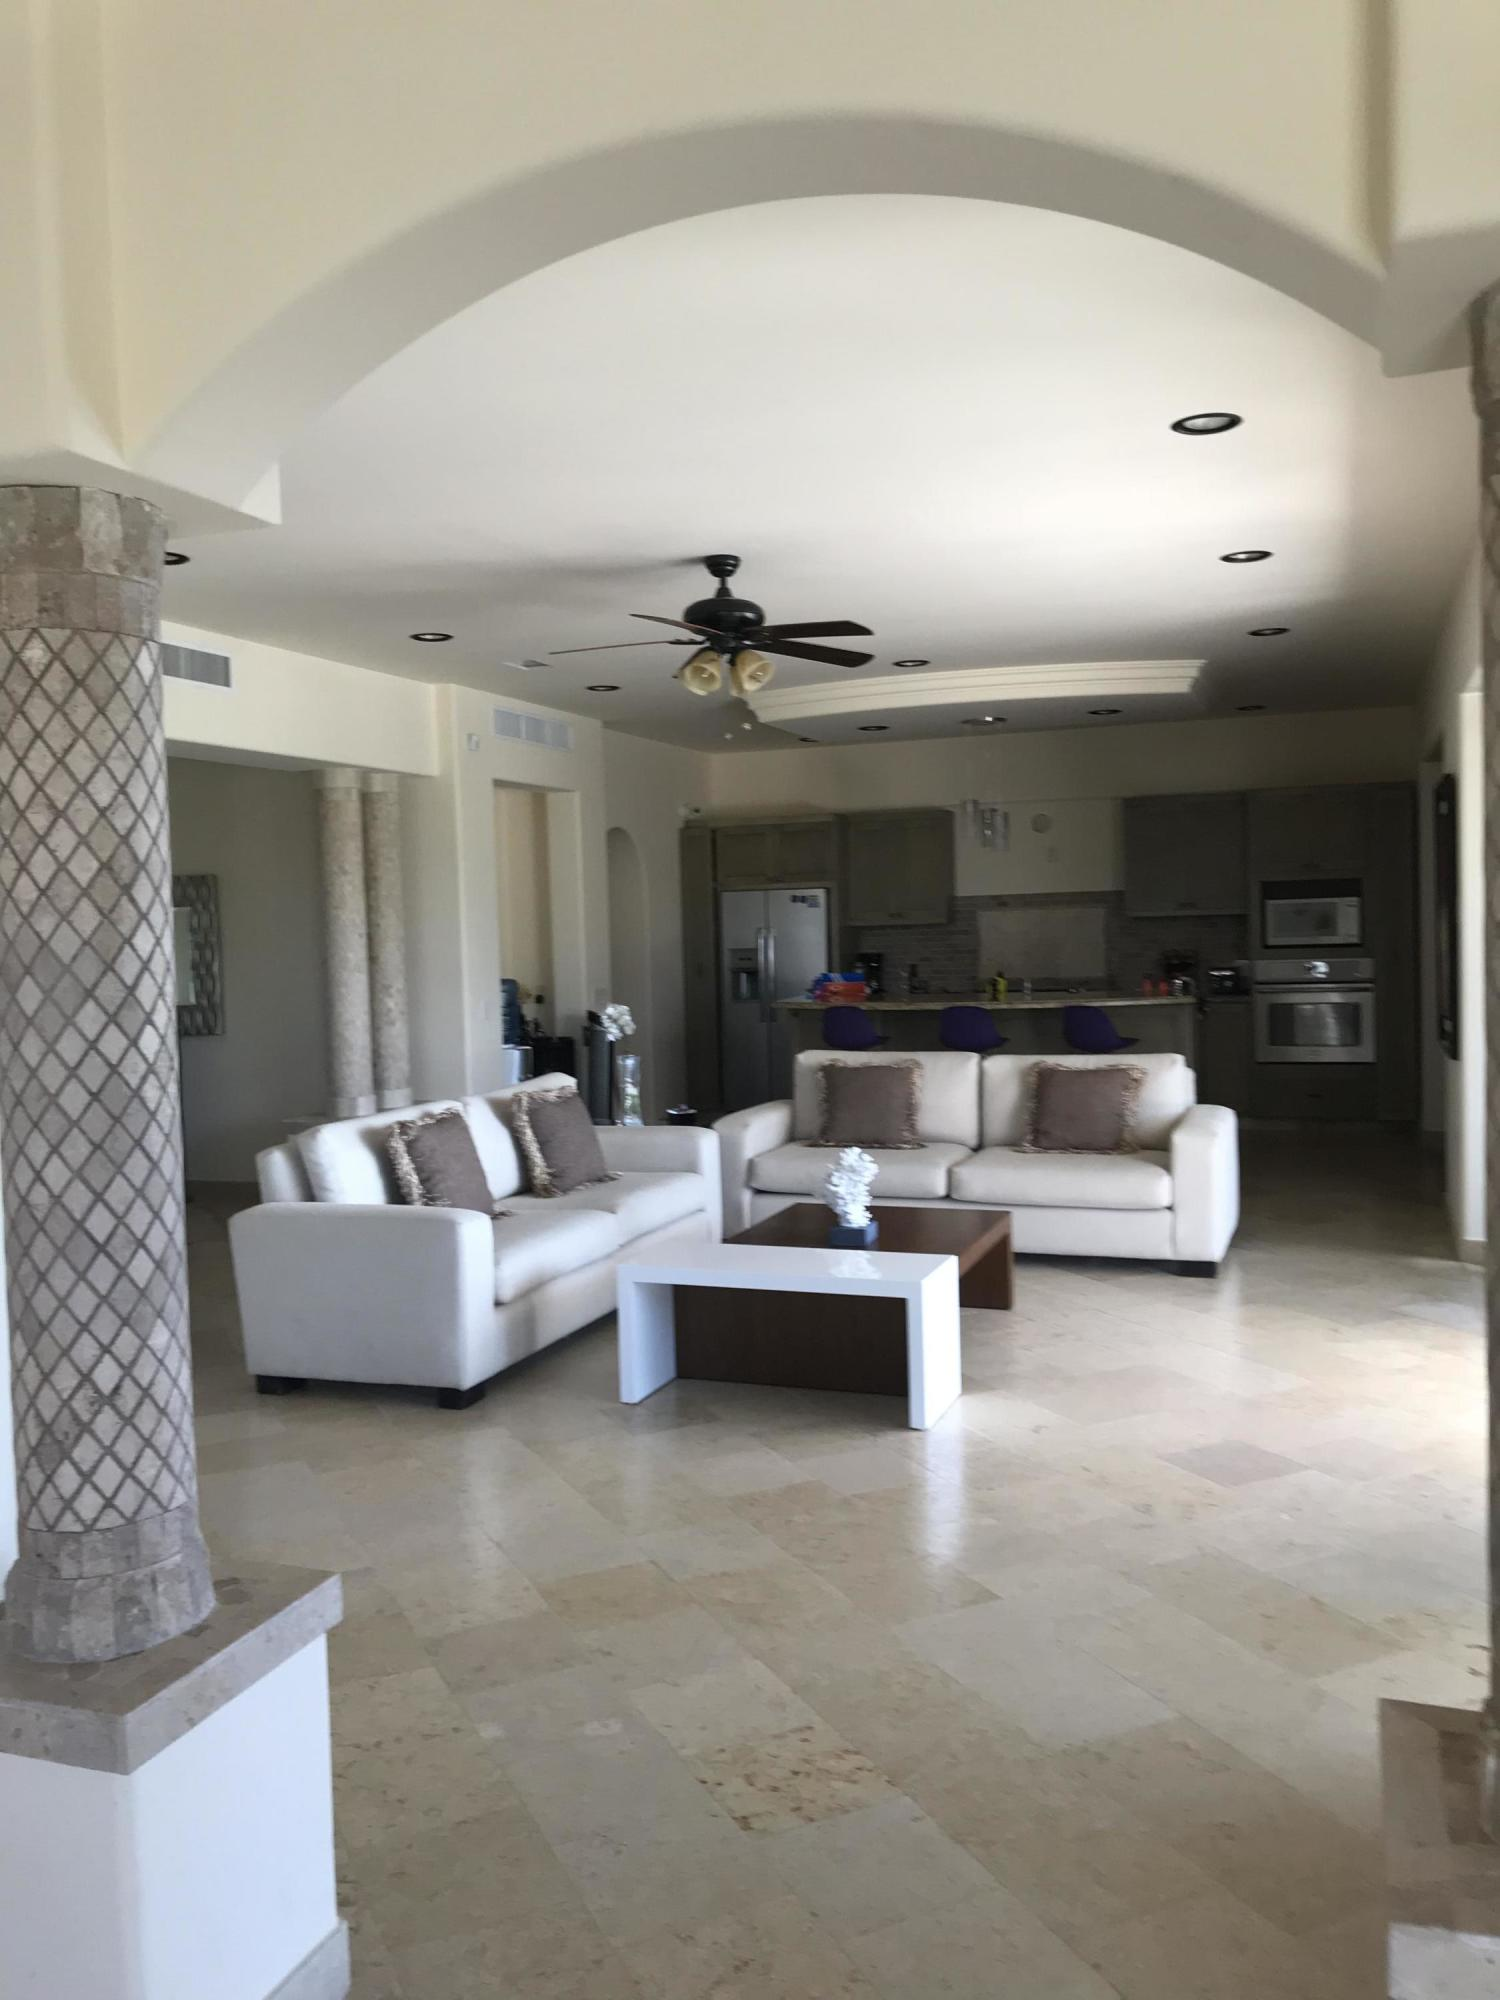 San Jose del Cabo, 5 Bedrooms Bedrooms, ,3 BathroomsBathrooms,House,For Sale,Los Valles,18-1739